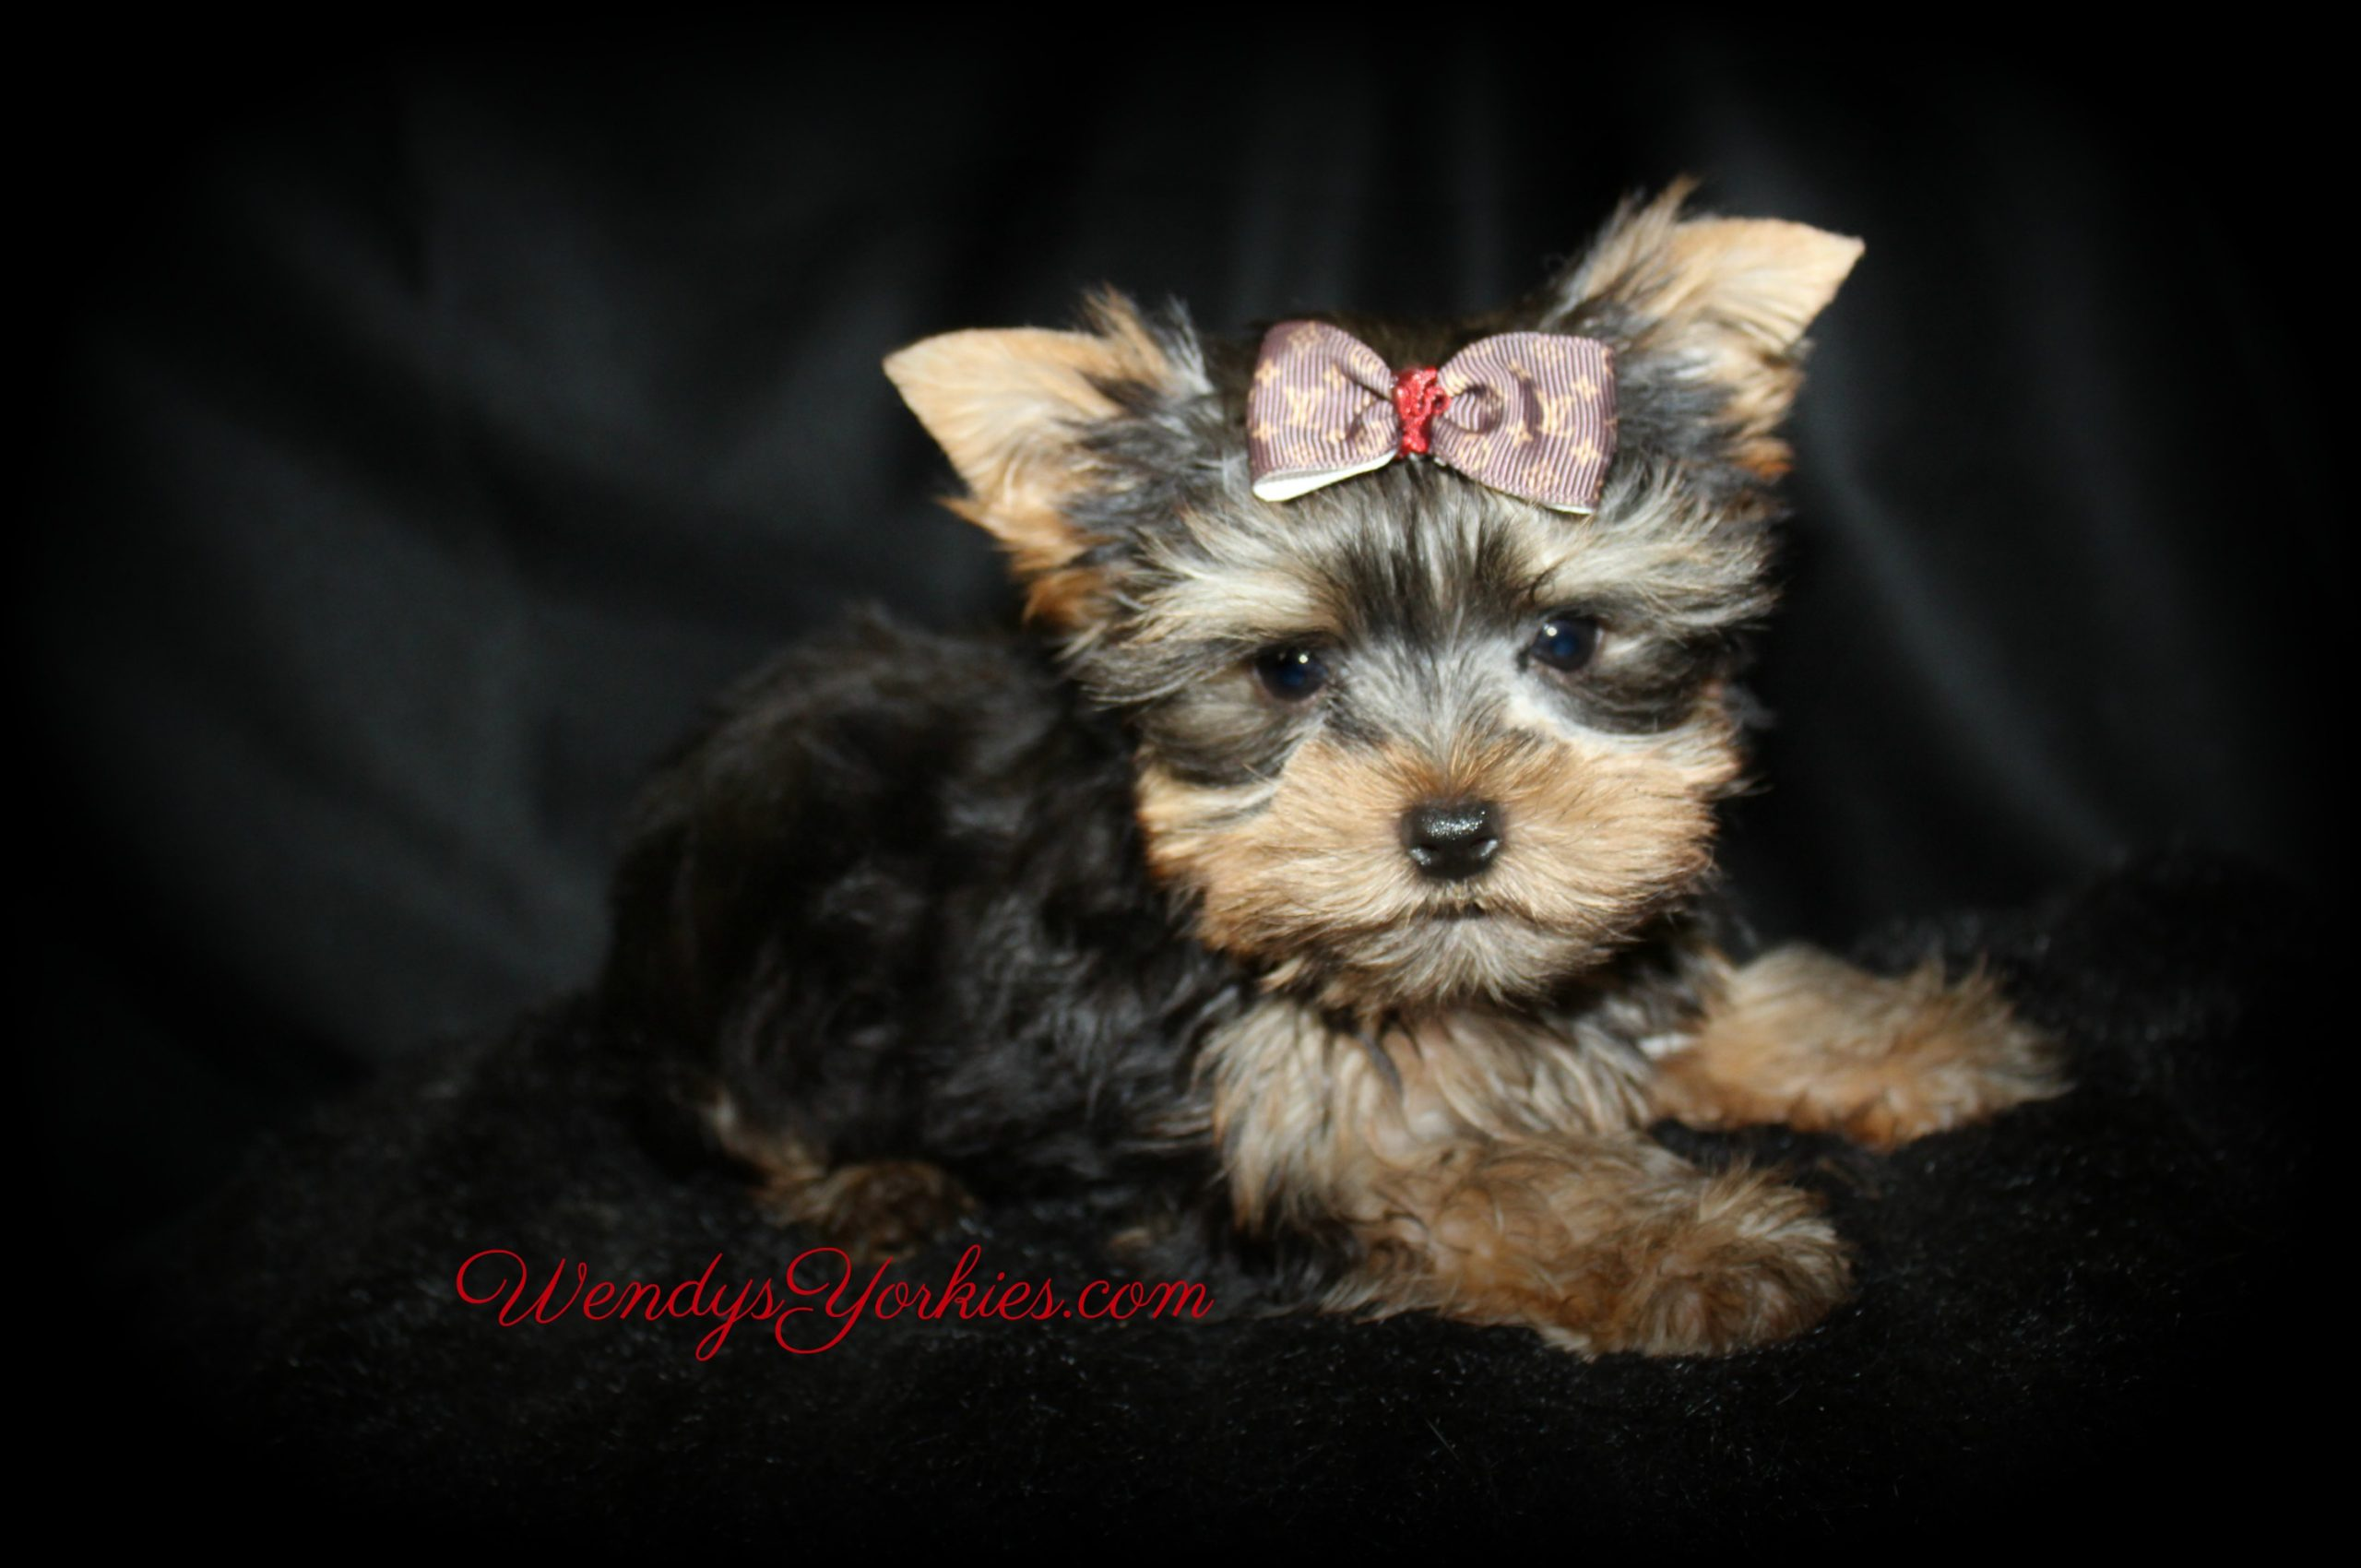 Yorkie puppies for sale, PS m1, WendysYorkies.com